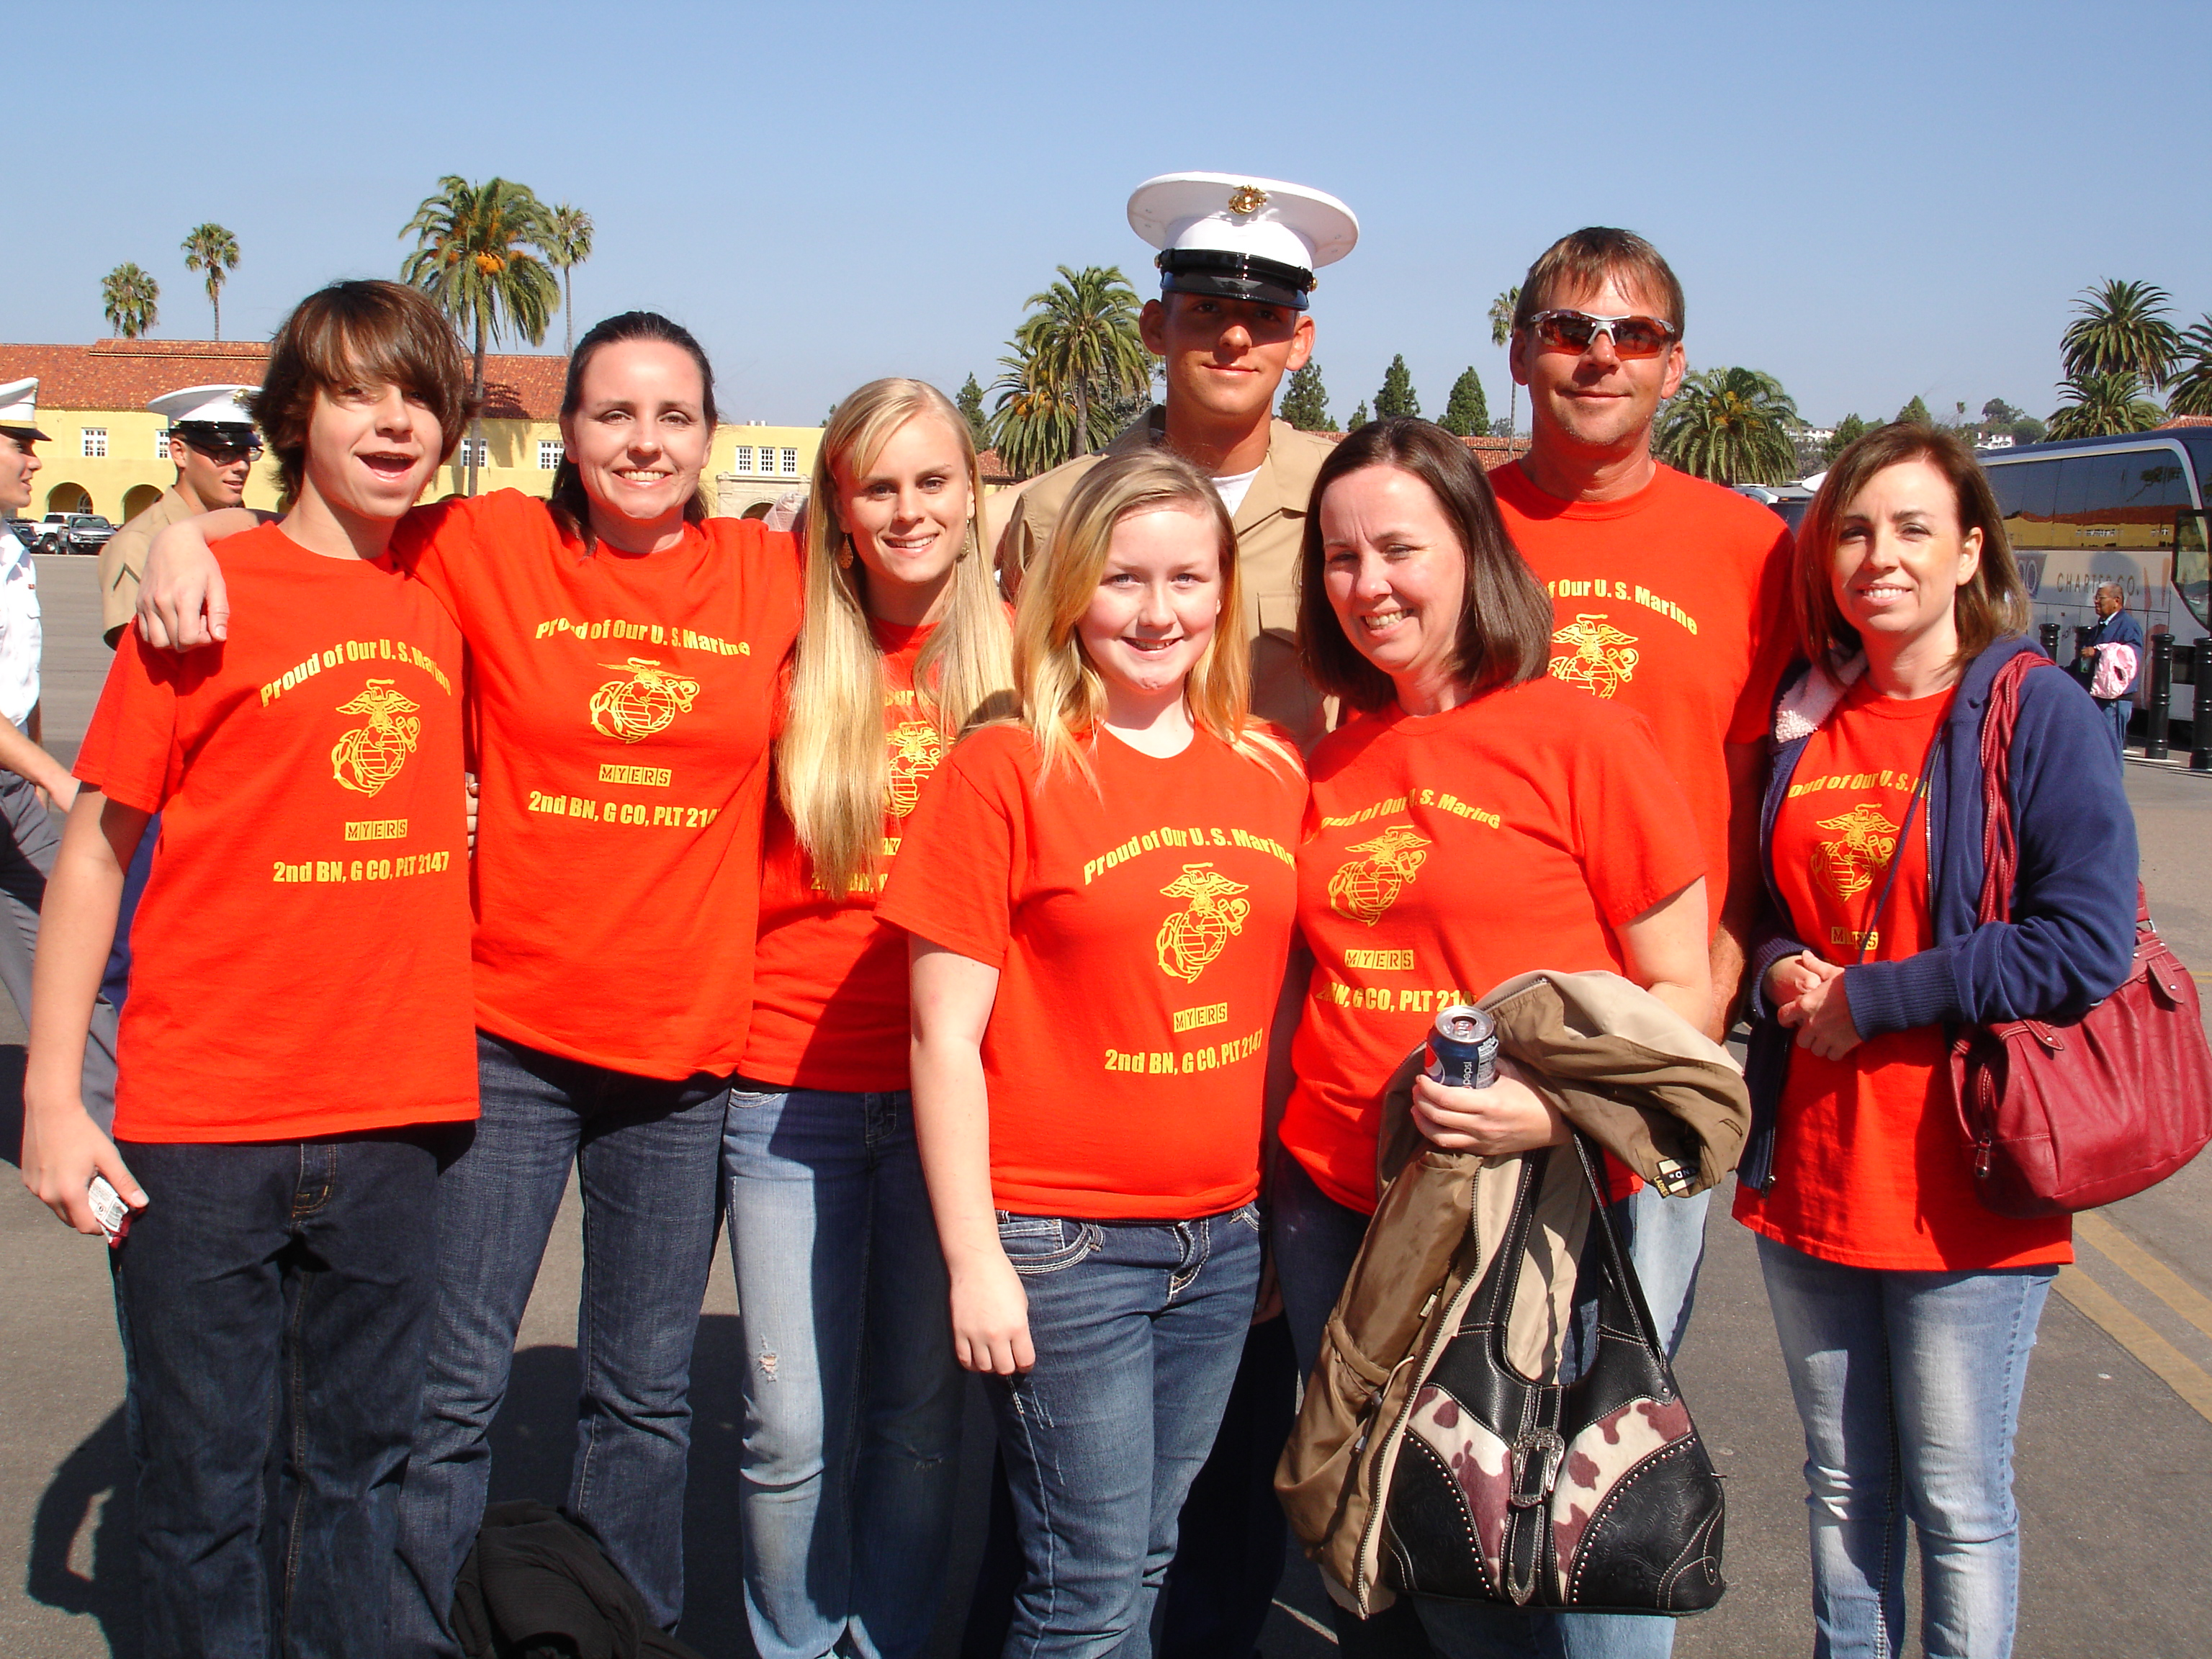 Custom T Shirts For Graduation Day At Marine Corps Boot